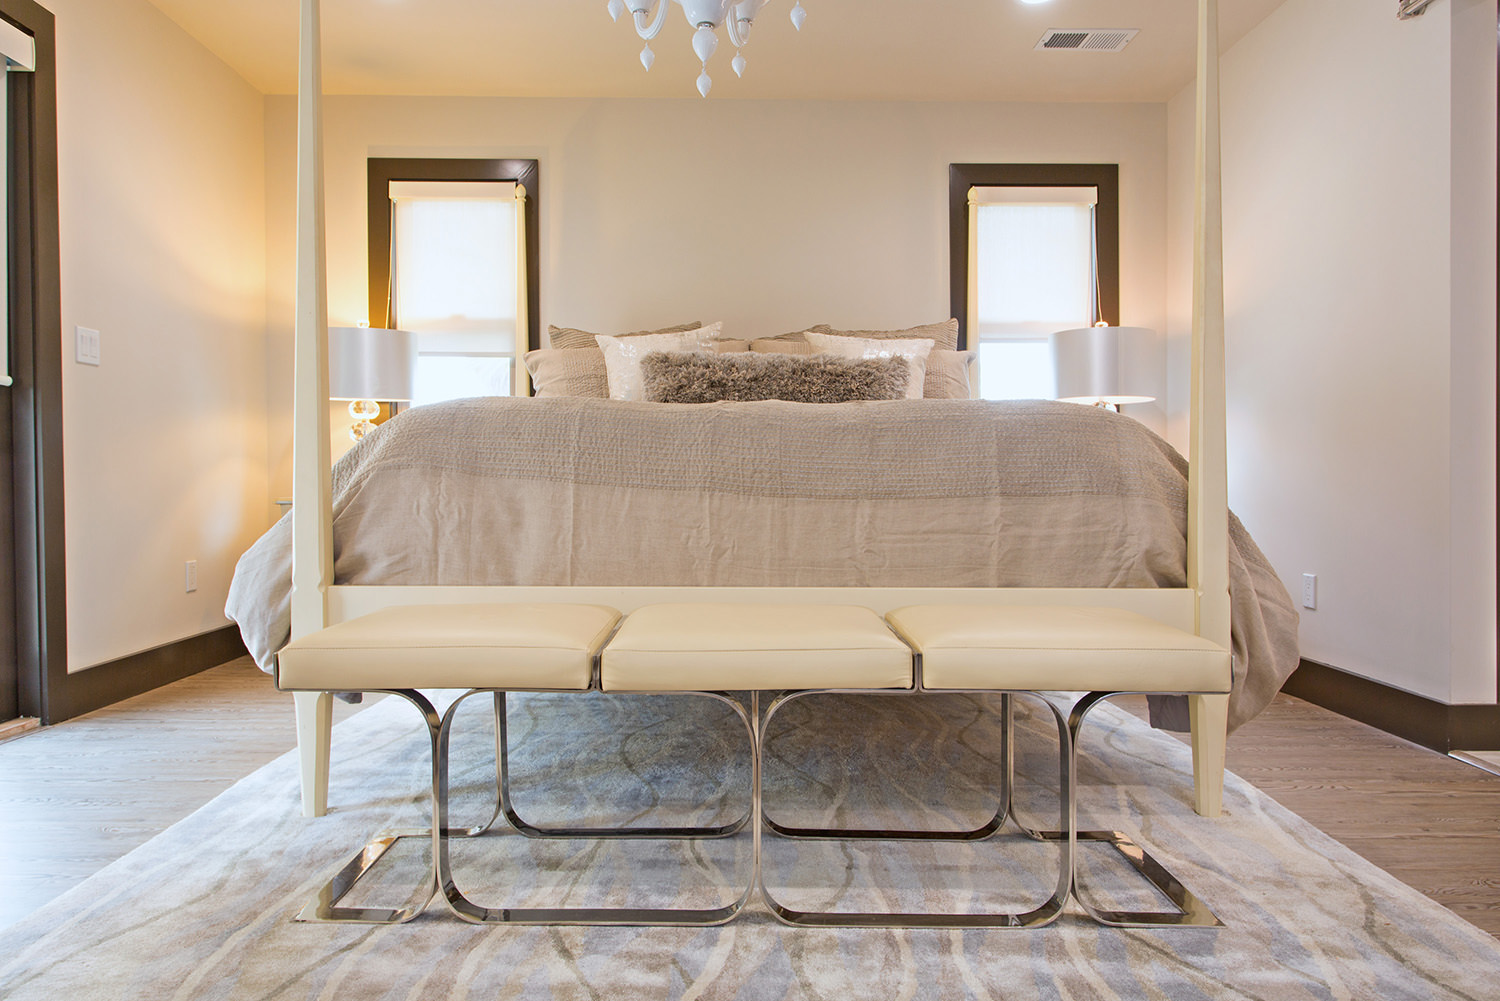 bedroom-interior-design-los-altos-california-ktj-design-co-8.jpg